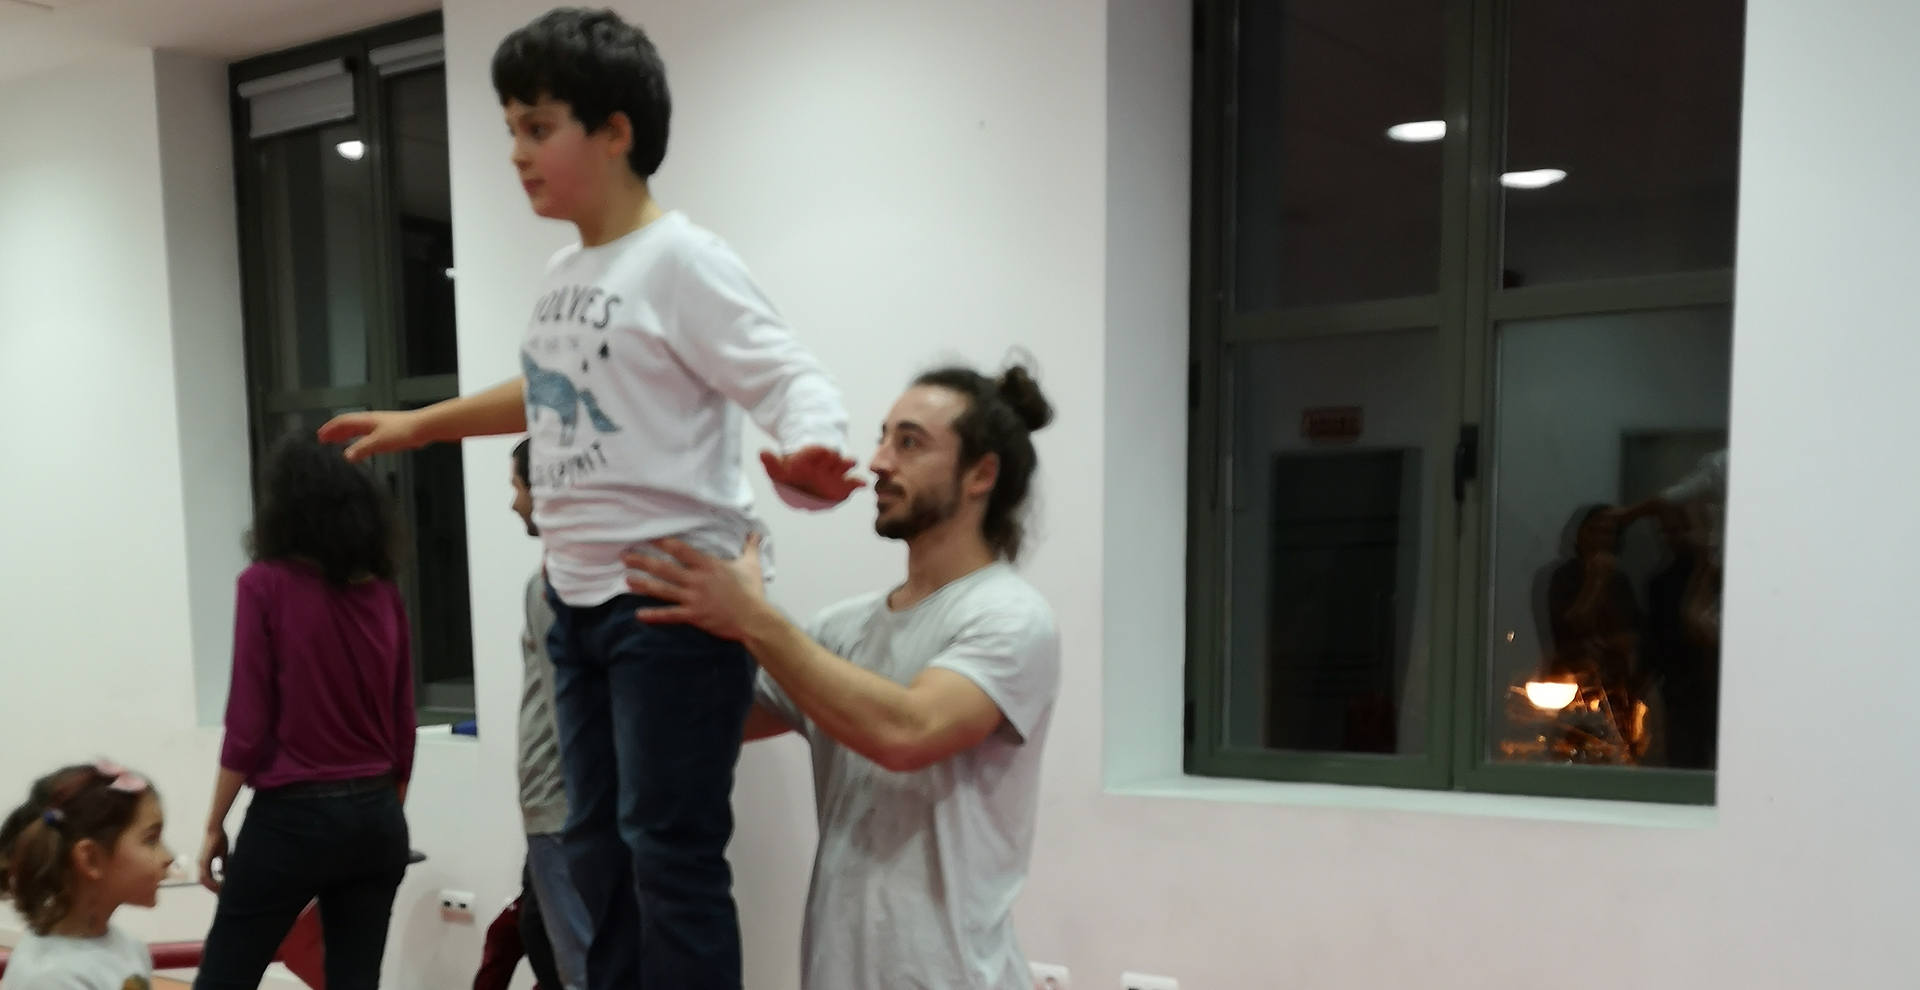 Equilikids